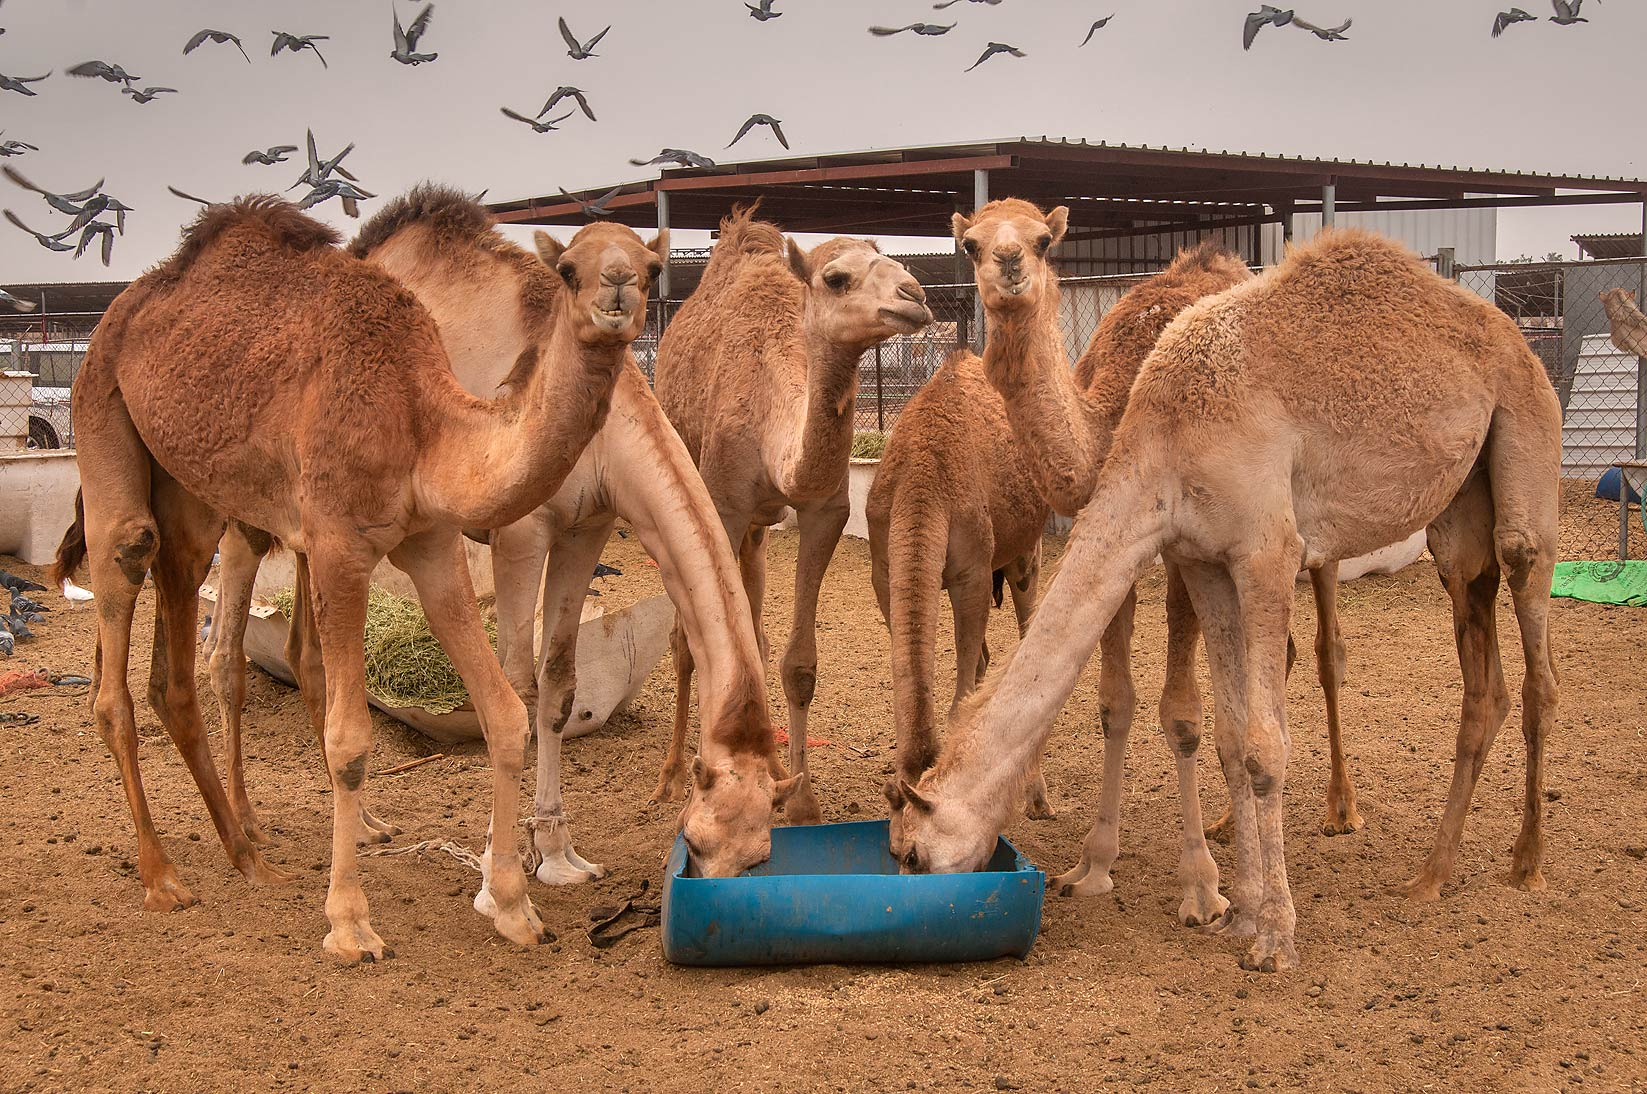 Group of camels taking breakfast in livestock market, Abu Hamour area. Doha, Qatar